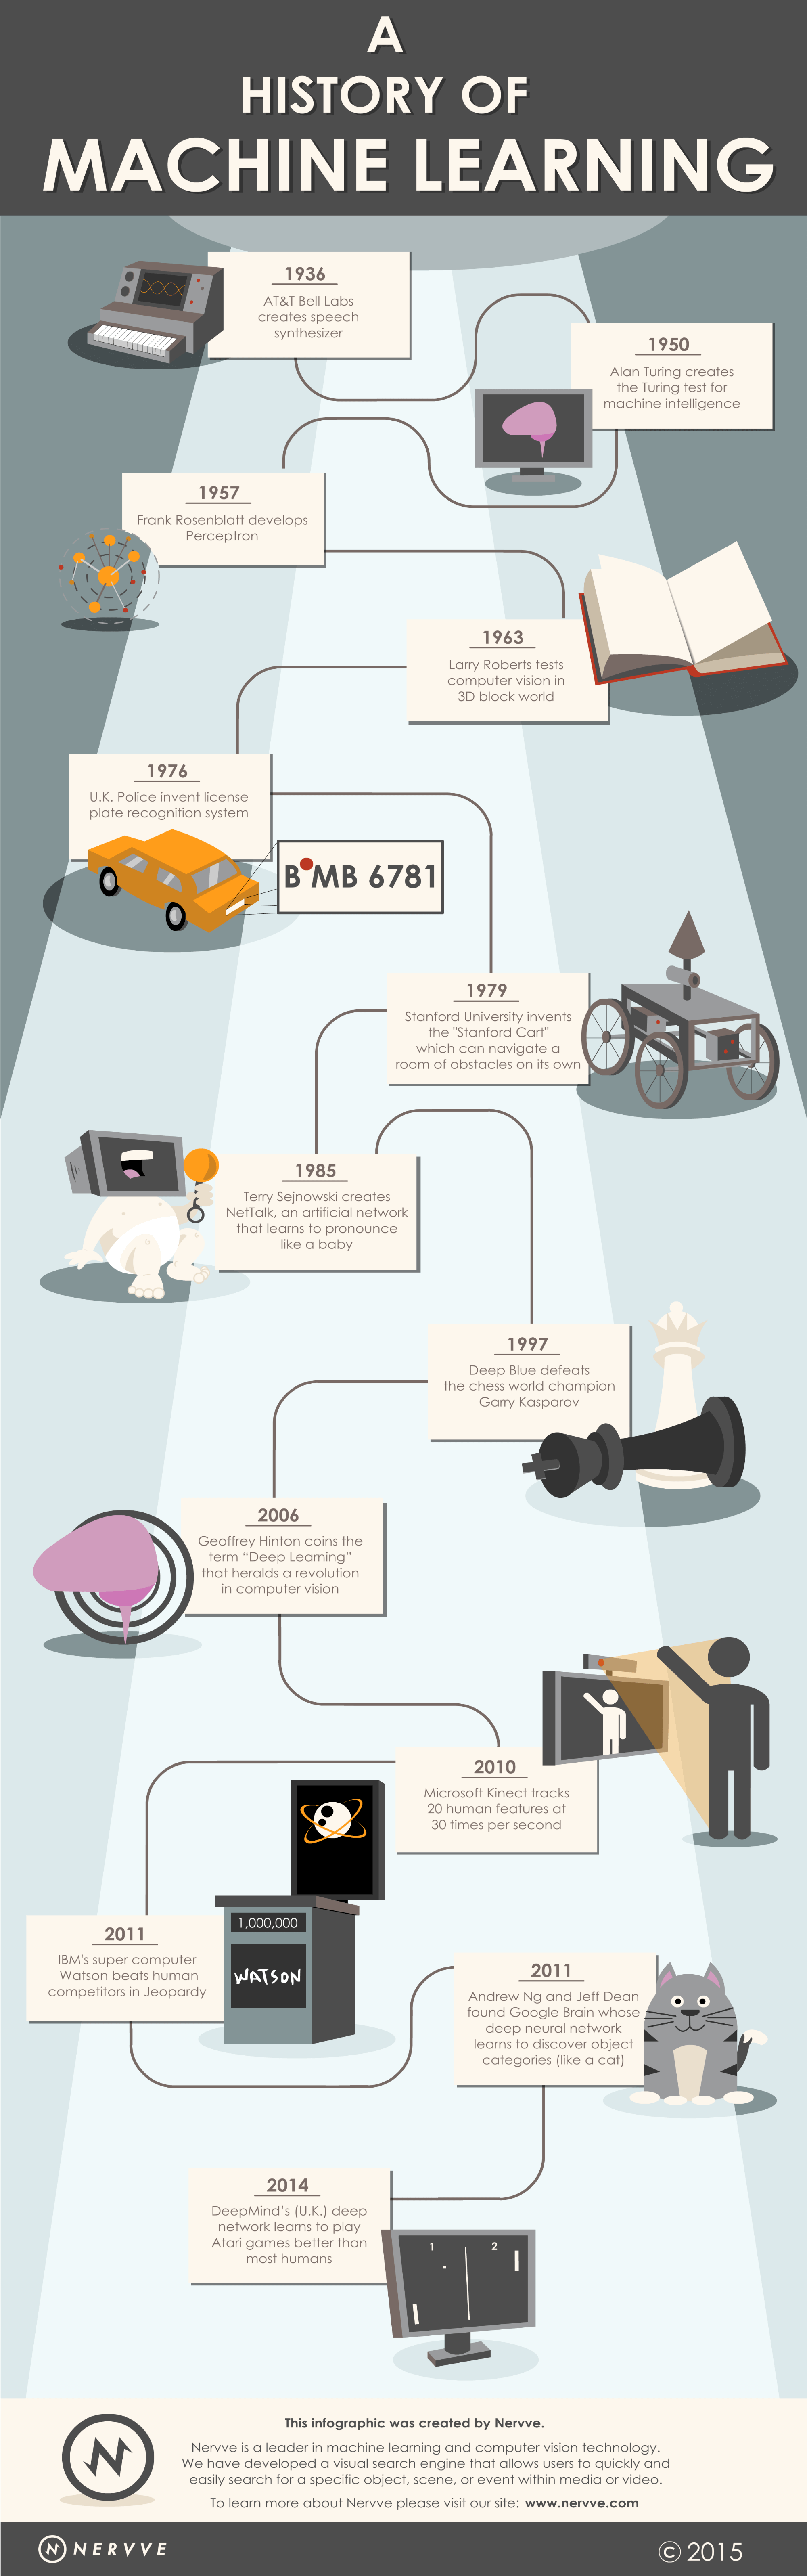 A history of machine learning info-graphic